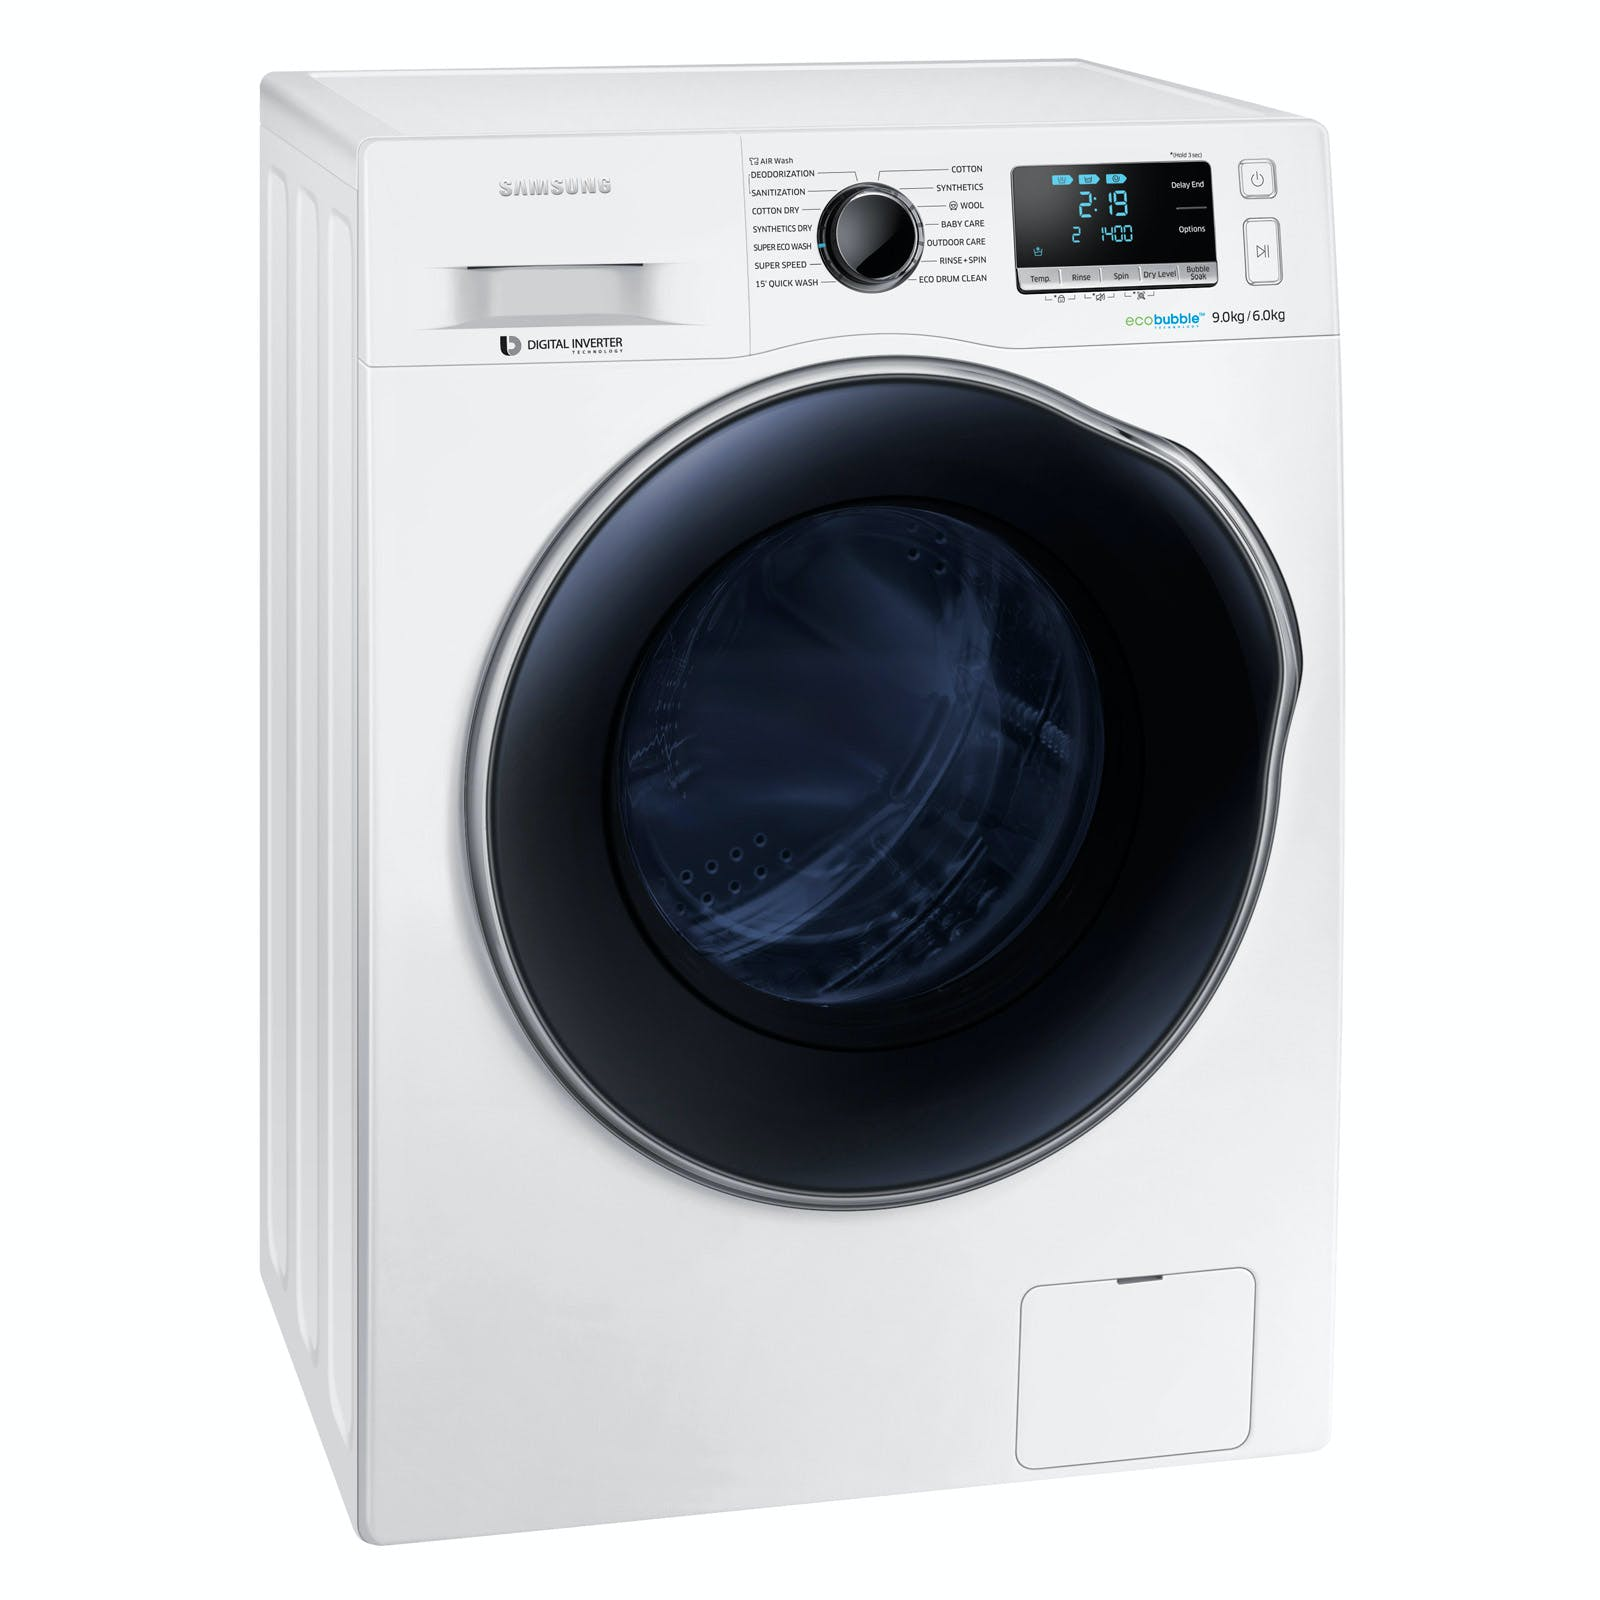 samsung wd90j6410aw eco bubble washer dryer in white 1400rpm 9kg 6kg. Black Bedroom Furniture Sets. Home Design Ideas